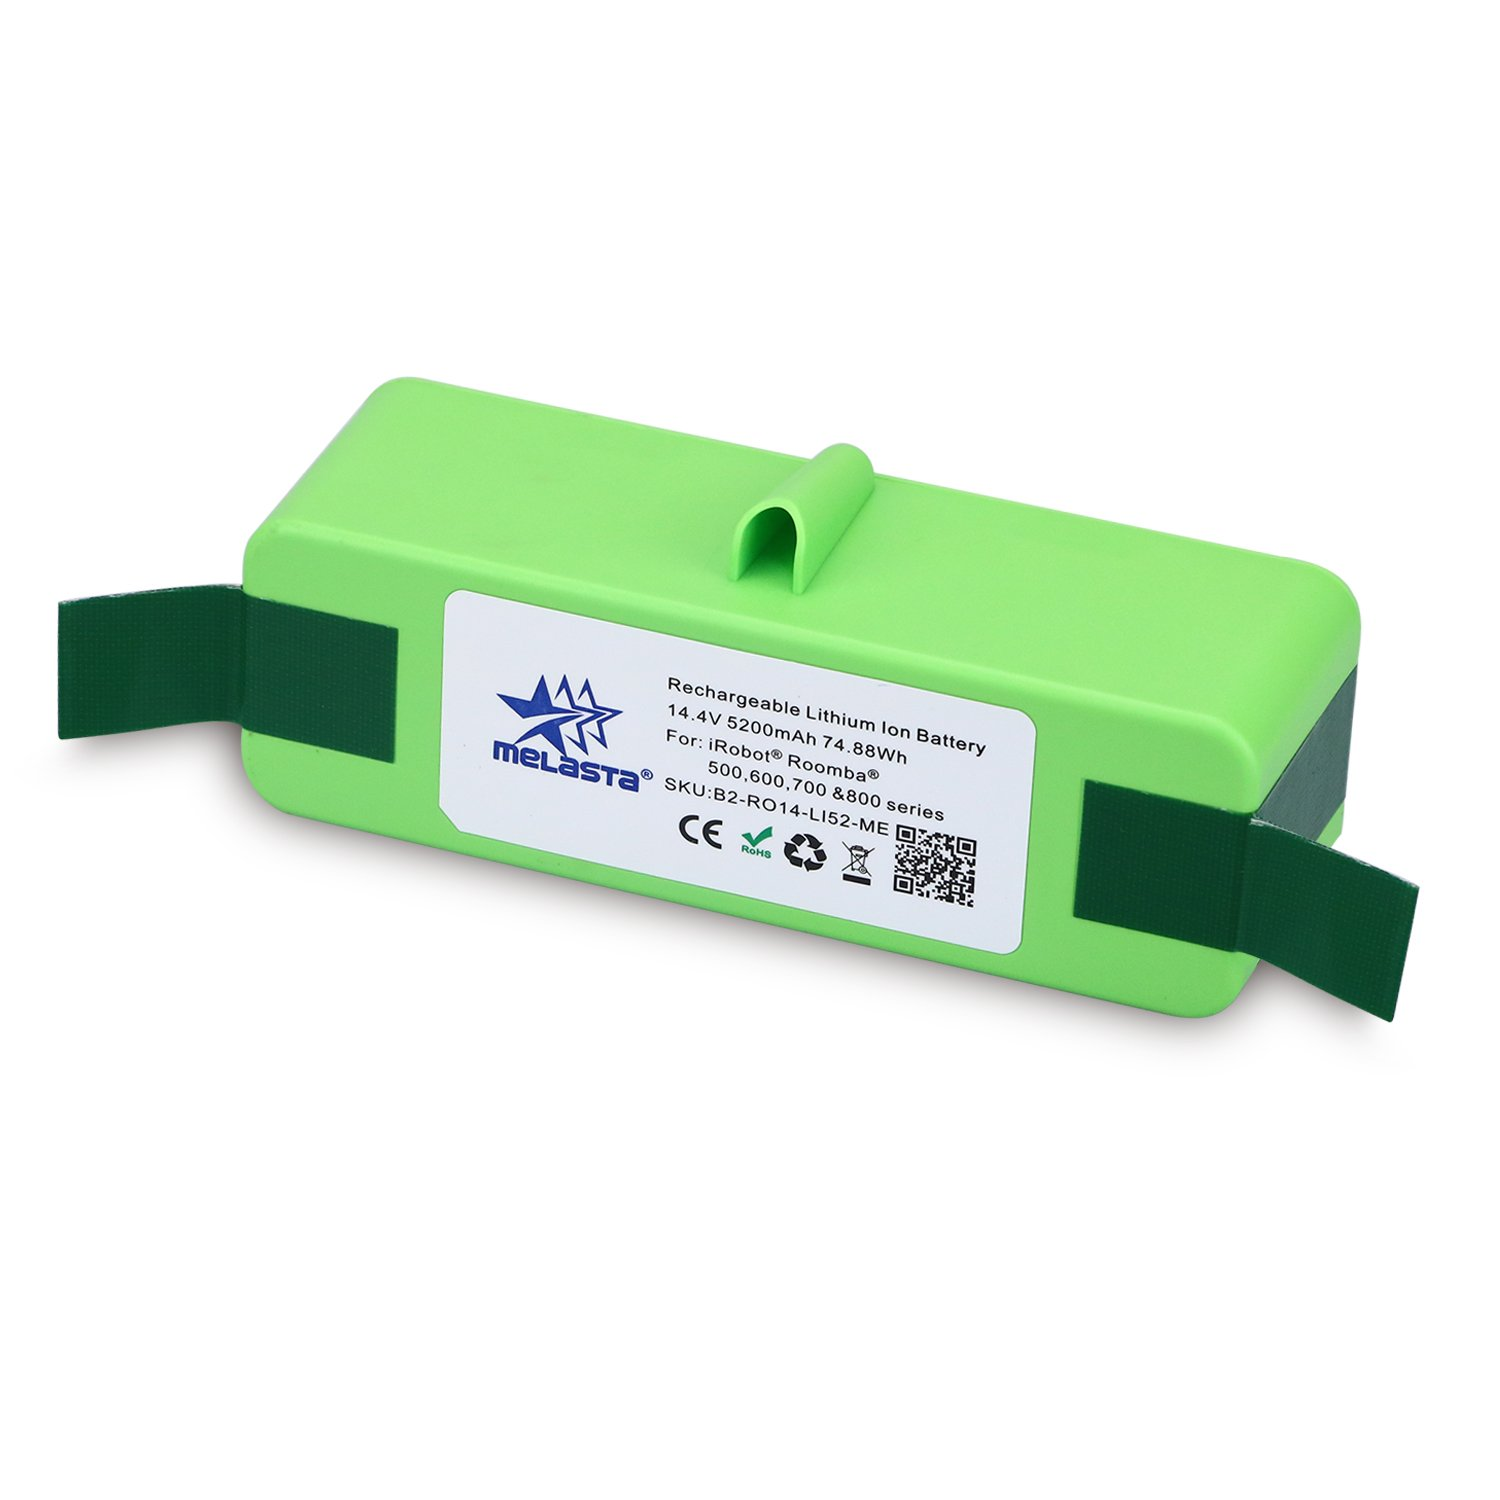 melasta 14.4V 5200mAh Lithium-ion Replacement Battery with Brand Cells (UL&CE Approved) for iRobot Roomba 500 600 700 800 Series 510 530 531 532 550 585 595 561 600 620 630 650 760 770 780 870 880 R3